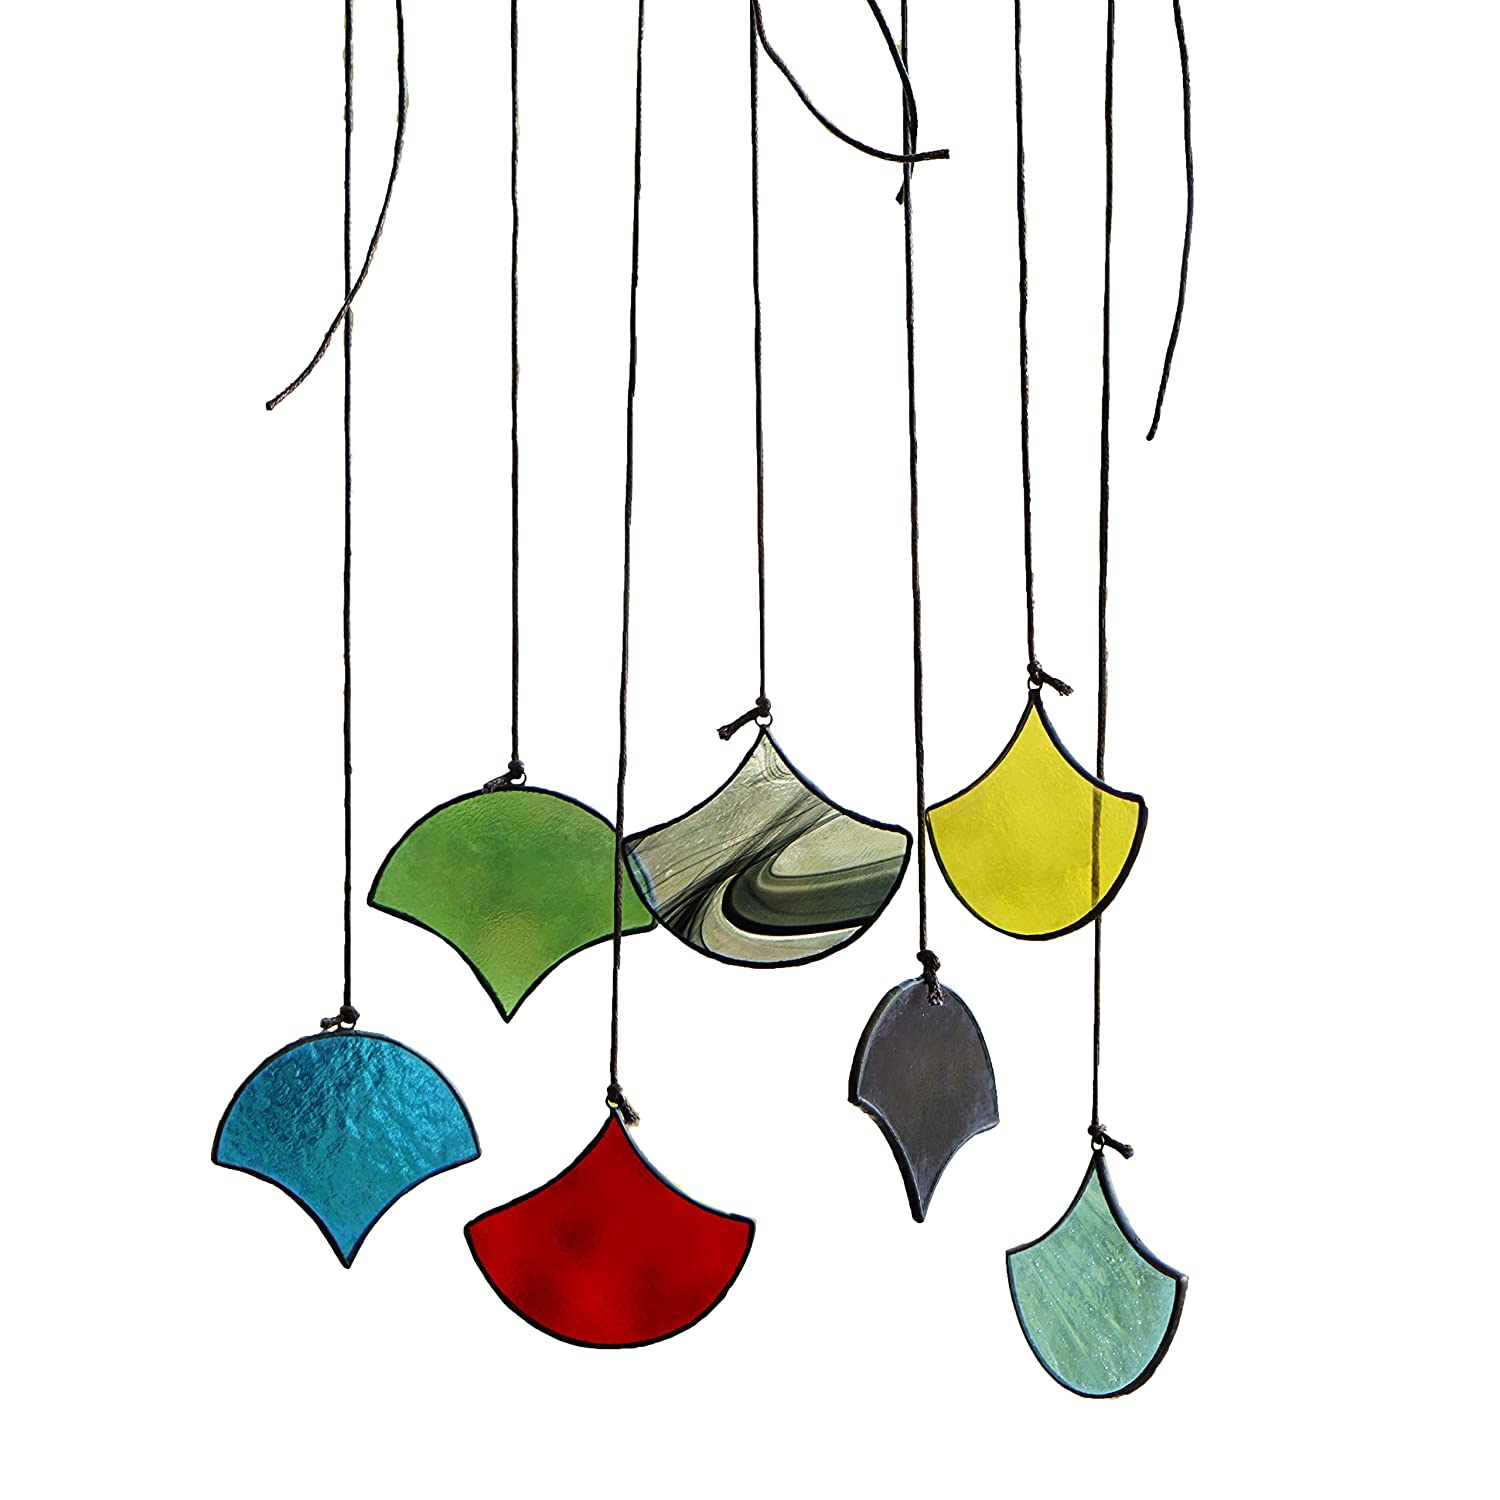 HAOSUM Suncatchers Set of 7 Multicoloured Stained Glass Window Hangings Ornament Sets Handmade for Home, Garden, Patio and Party Decoration HSSGA001